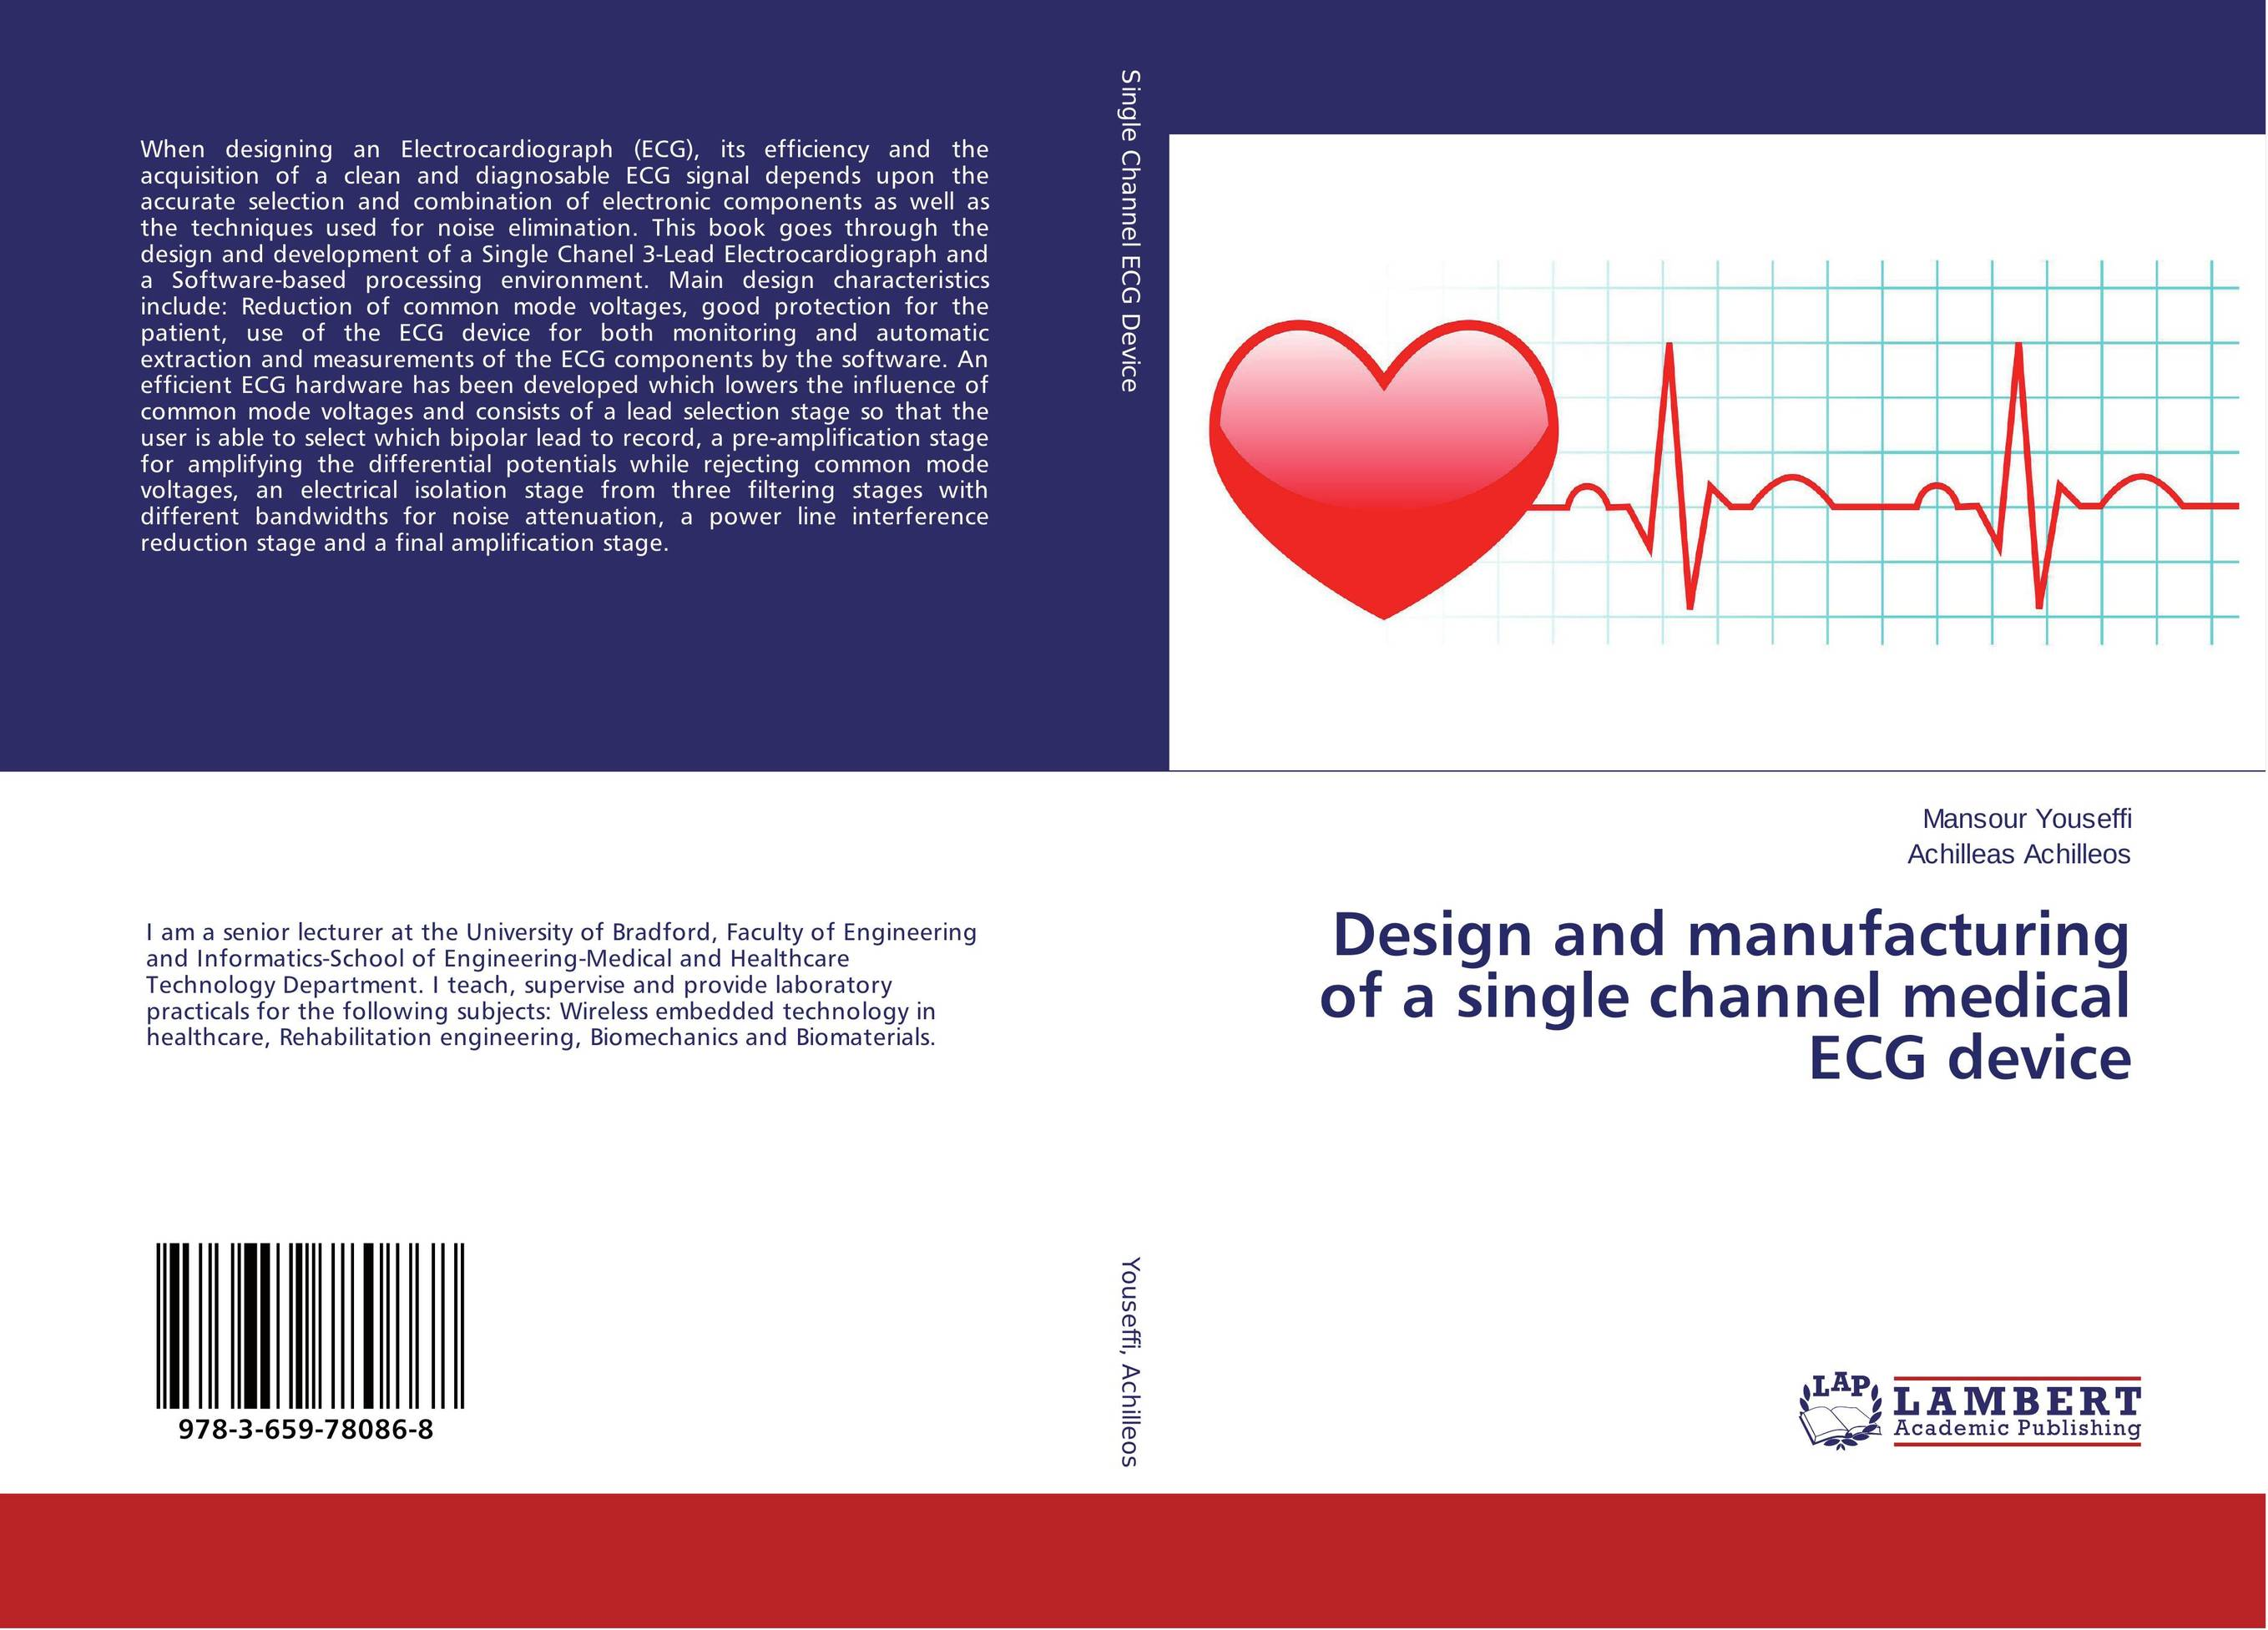 Design and manufacturing of a single channel medical ECG device купить